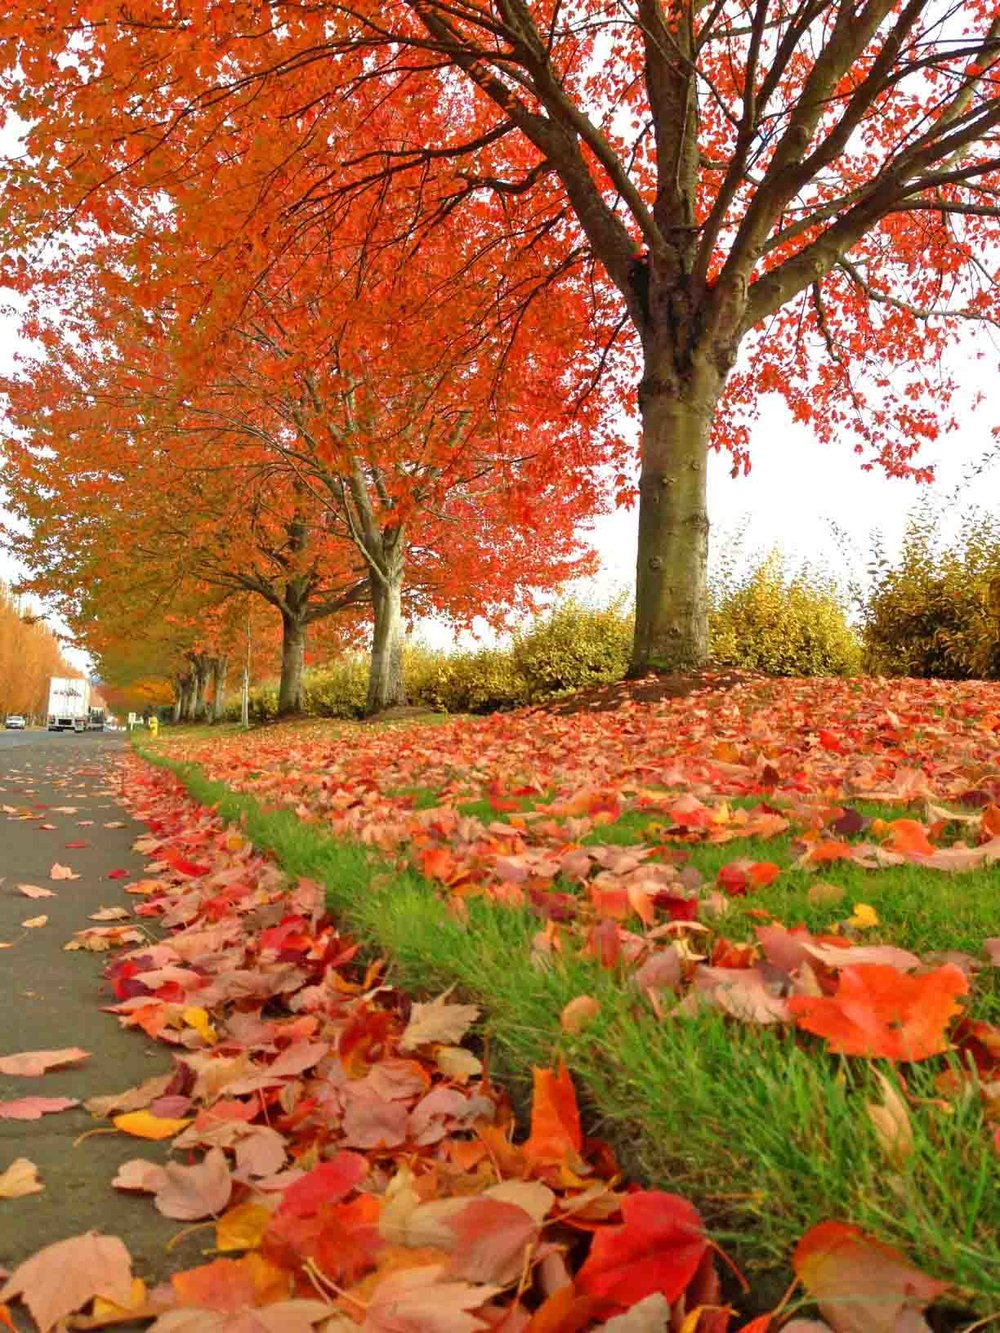 We're changing what we wear ! All those bright colors - the stuff of fall. In Vancouver, WA. The American Vancouver. Photo: (c) Barb Ayers, DogDiary.org